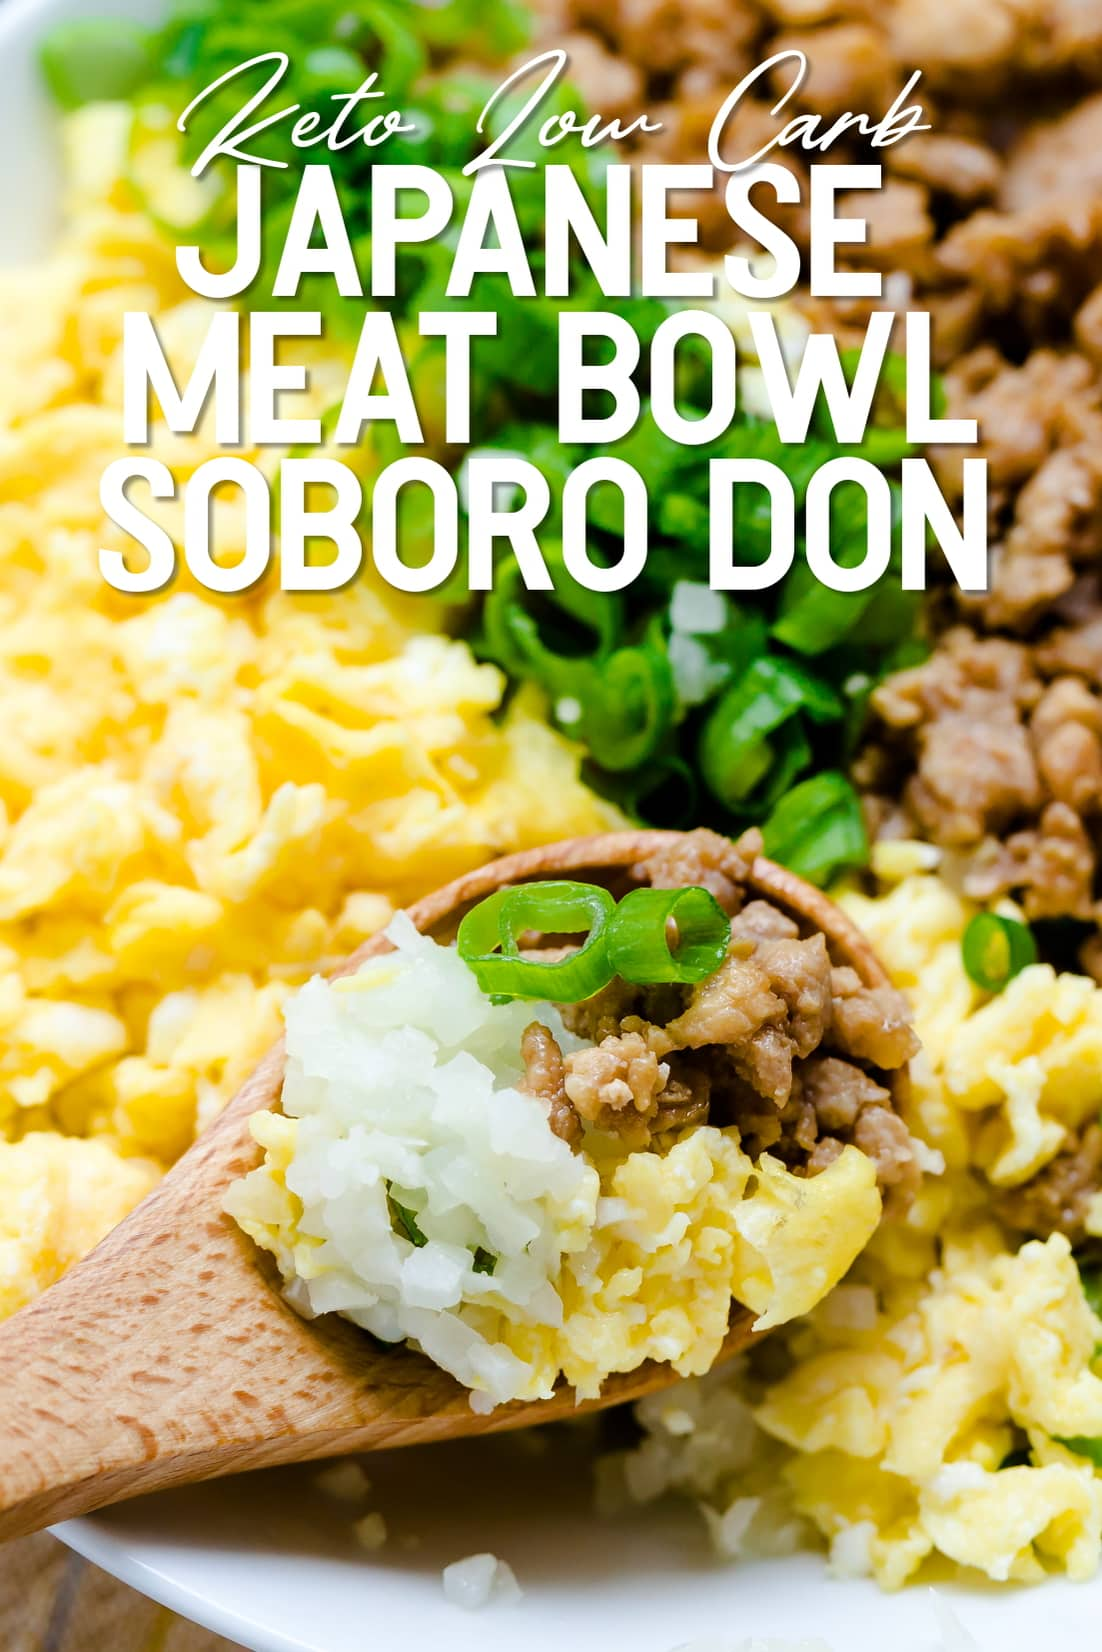 Japanese Ground Chicken Bowl Soboro Don being picked up with a wooden spoon